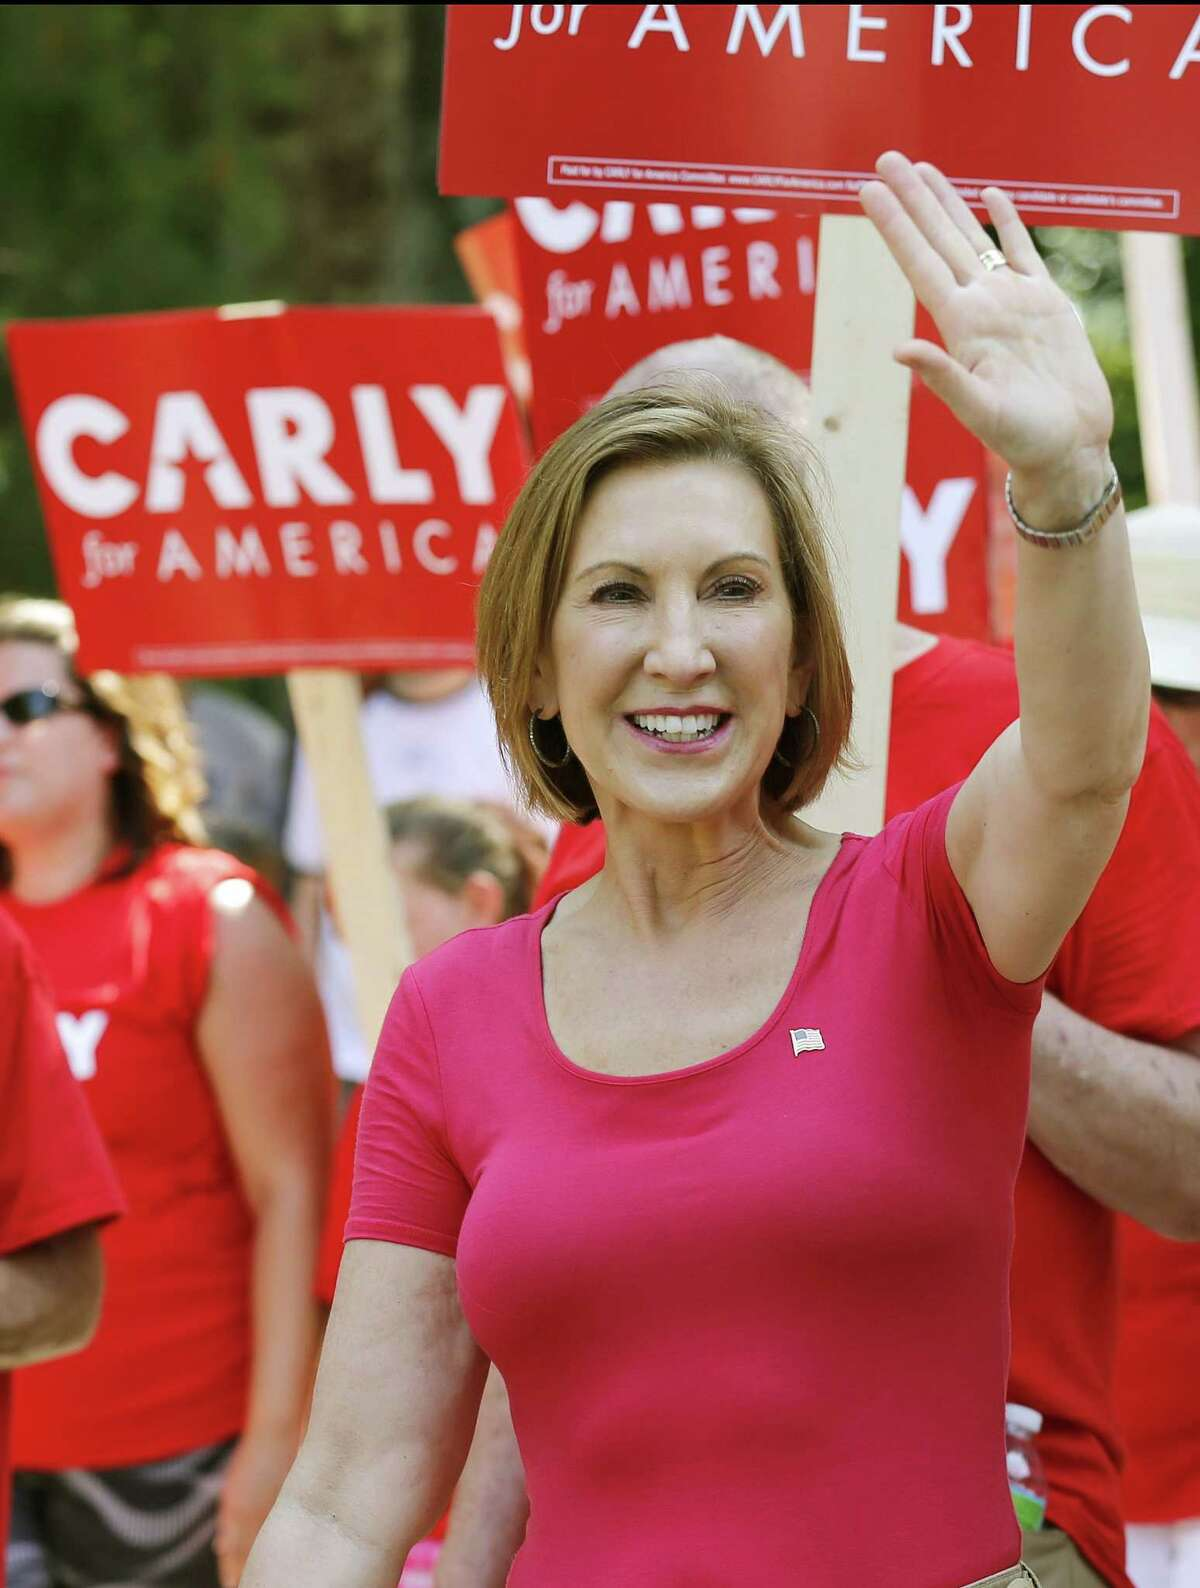 Republican presidential candidate Carly Fiorina, the former Hewlett-Packard chief executive waves as she and supporters march in the Labor Day parade Monday, Sept. 7, 2015, in Milford, N.H.